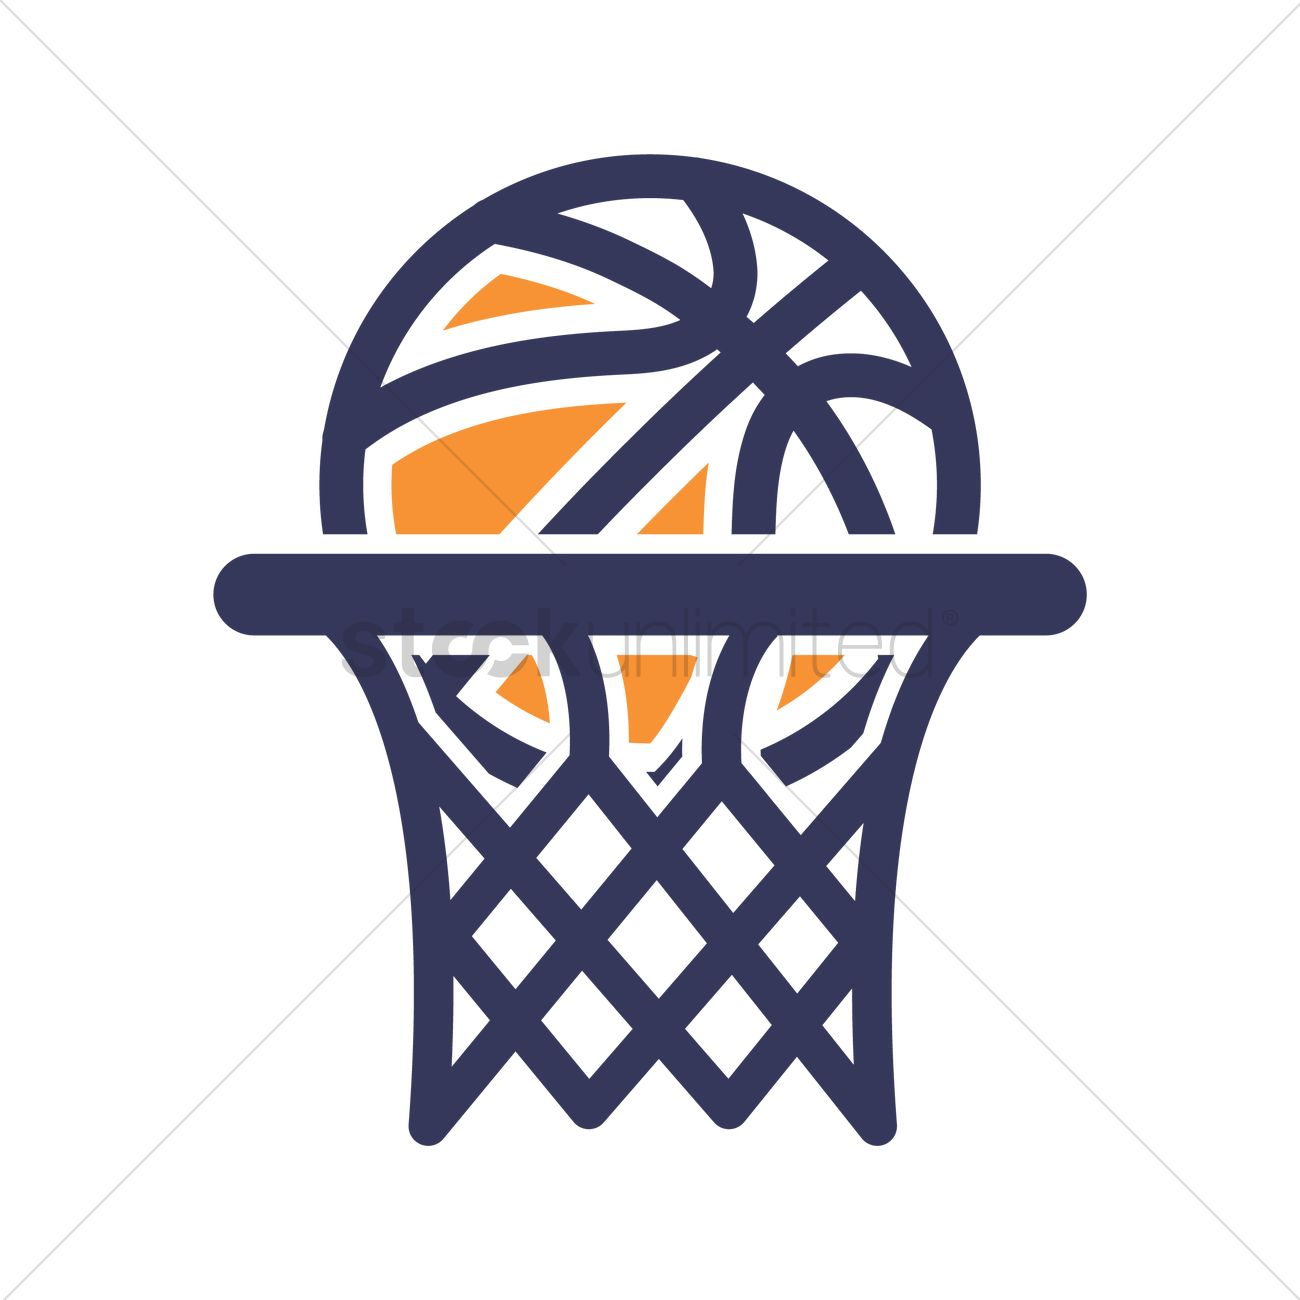 http://images.stockunlimited.net/preview1300/basketball-hoop-icon_1984920.jpg Basketball